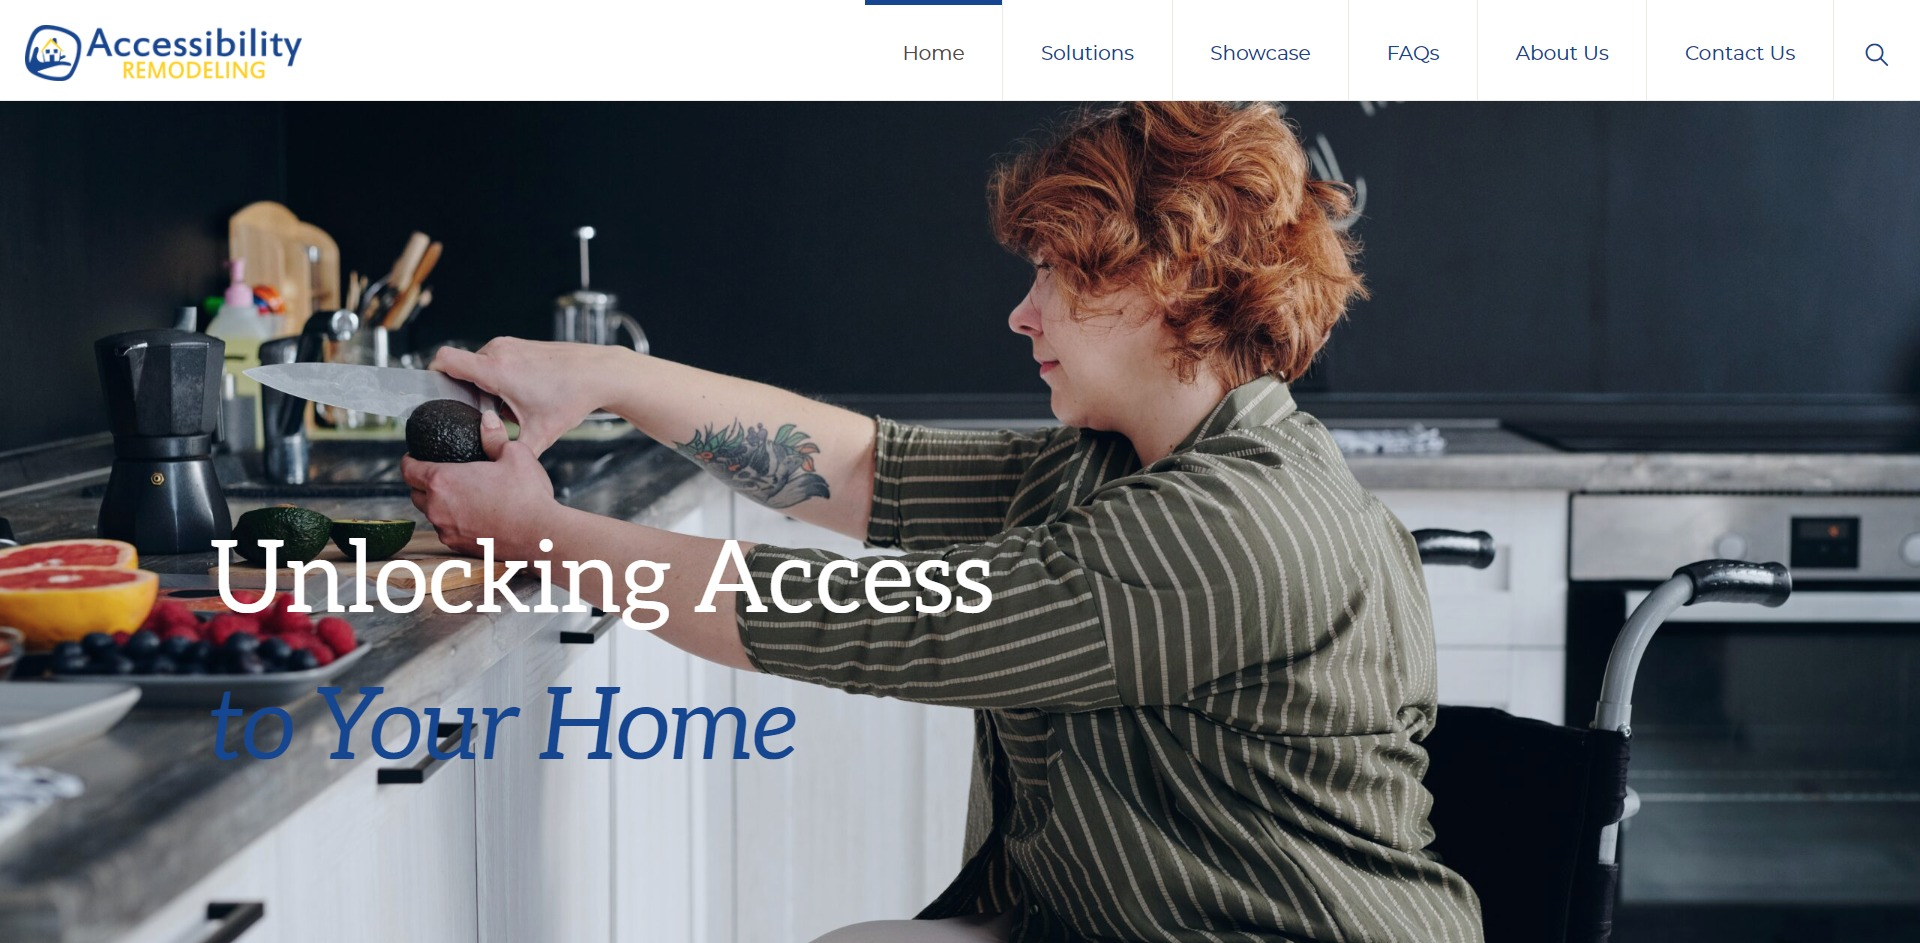 Screenshot: Accessibility Remodeling Website Homepage